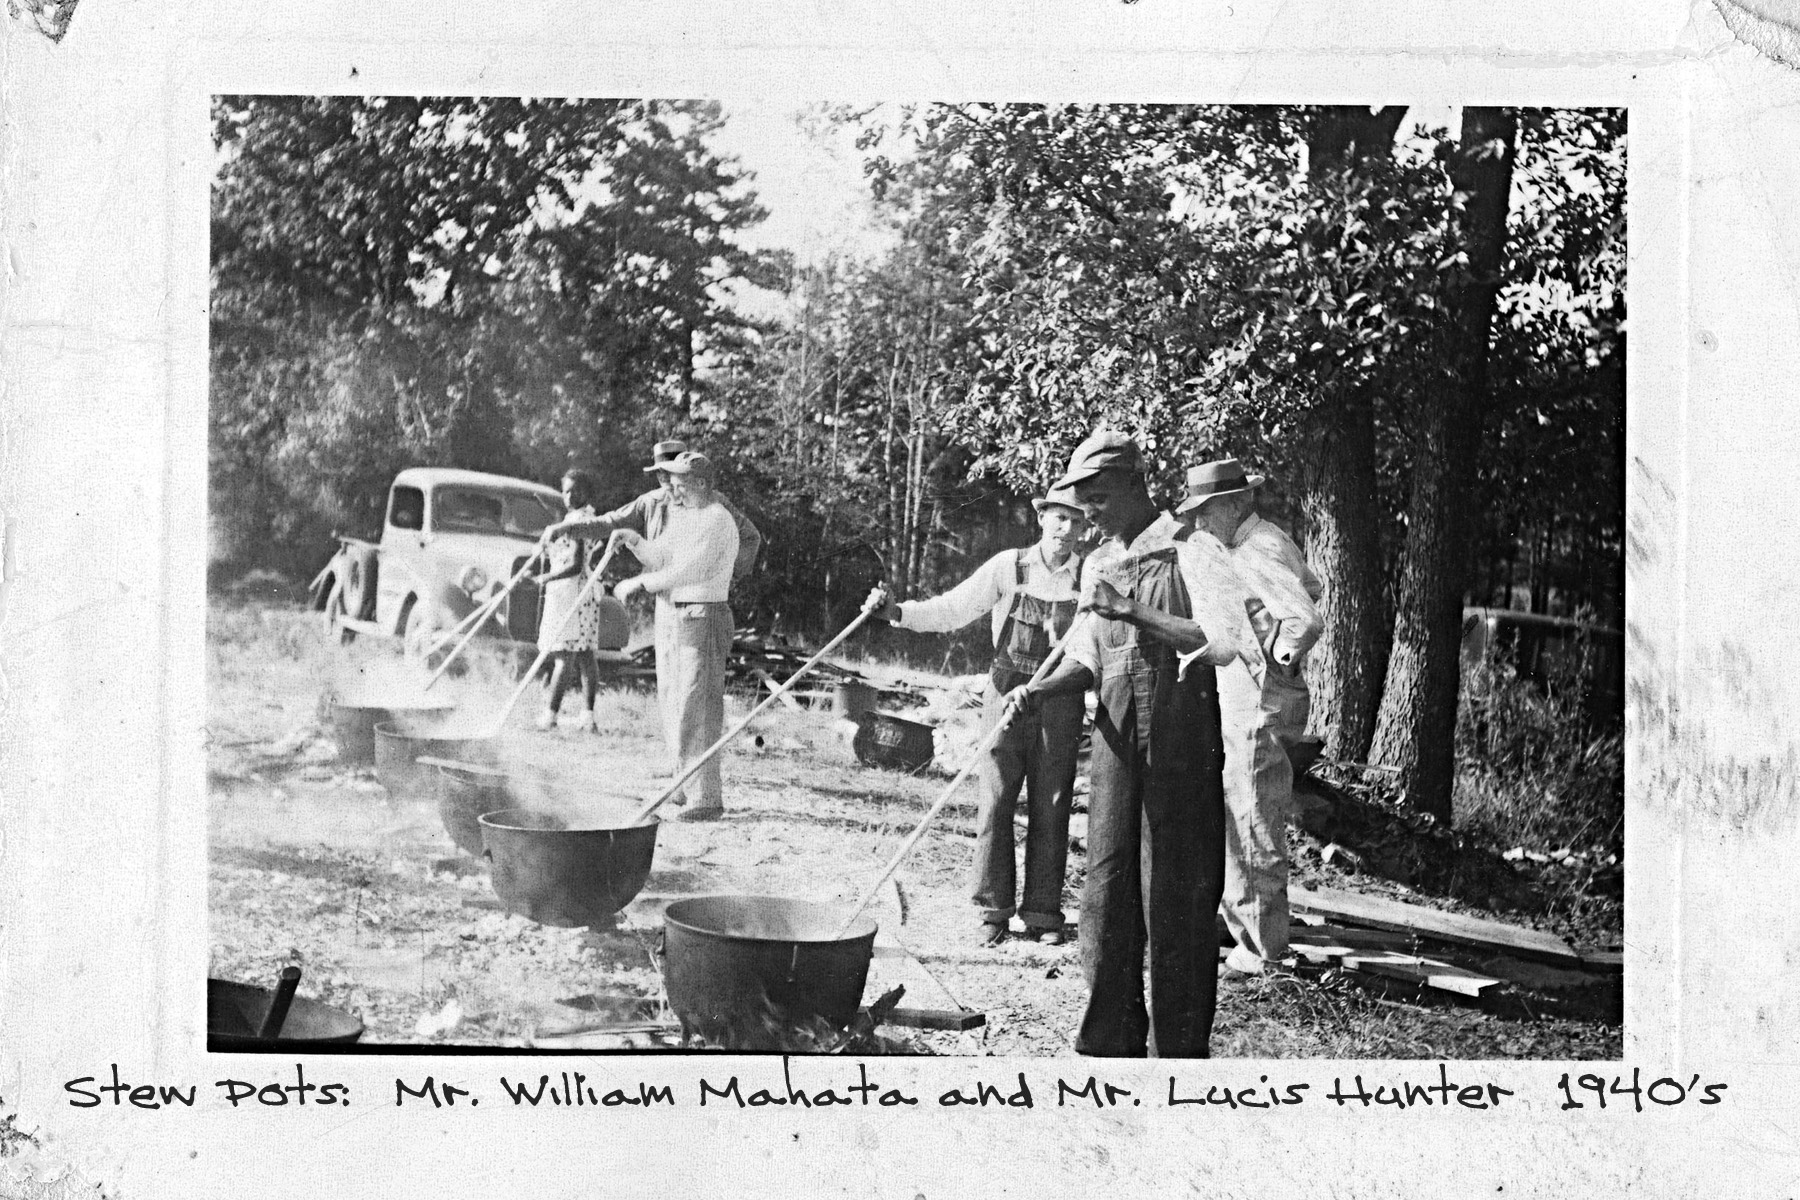 Stew Pots Mr. Lucis Hunter (back) Mr. William Mahata (front) 1940